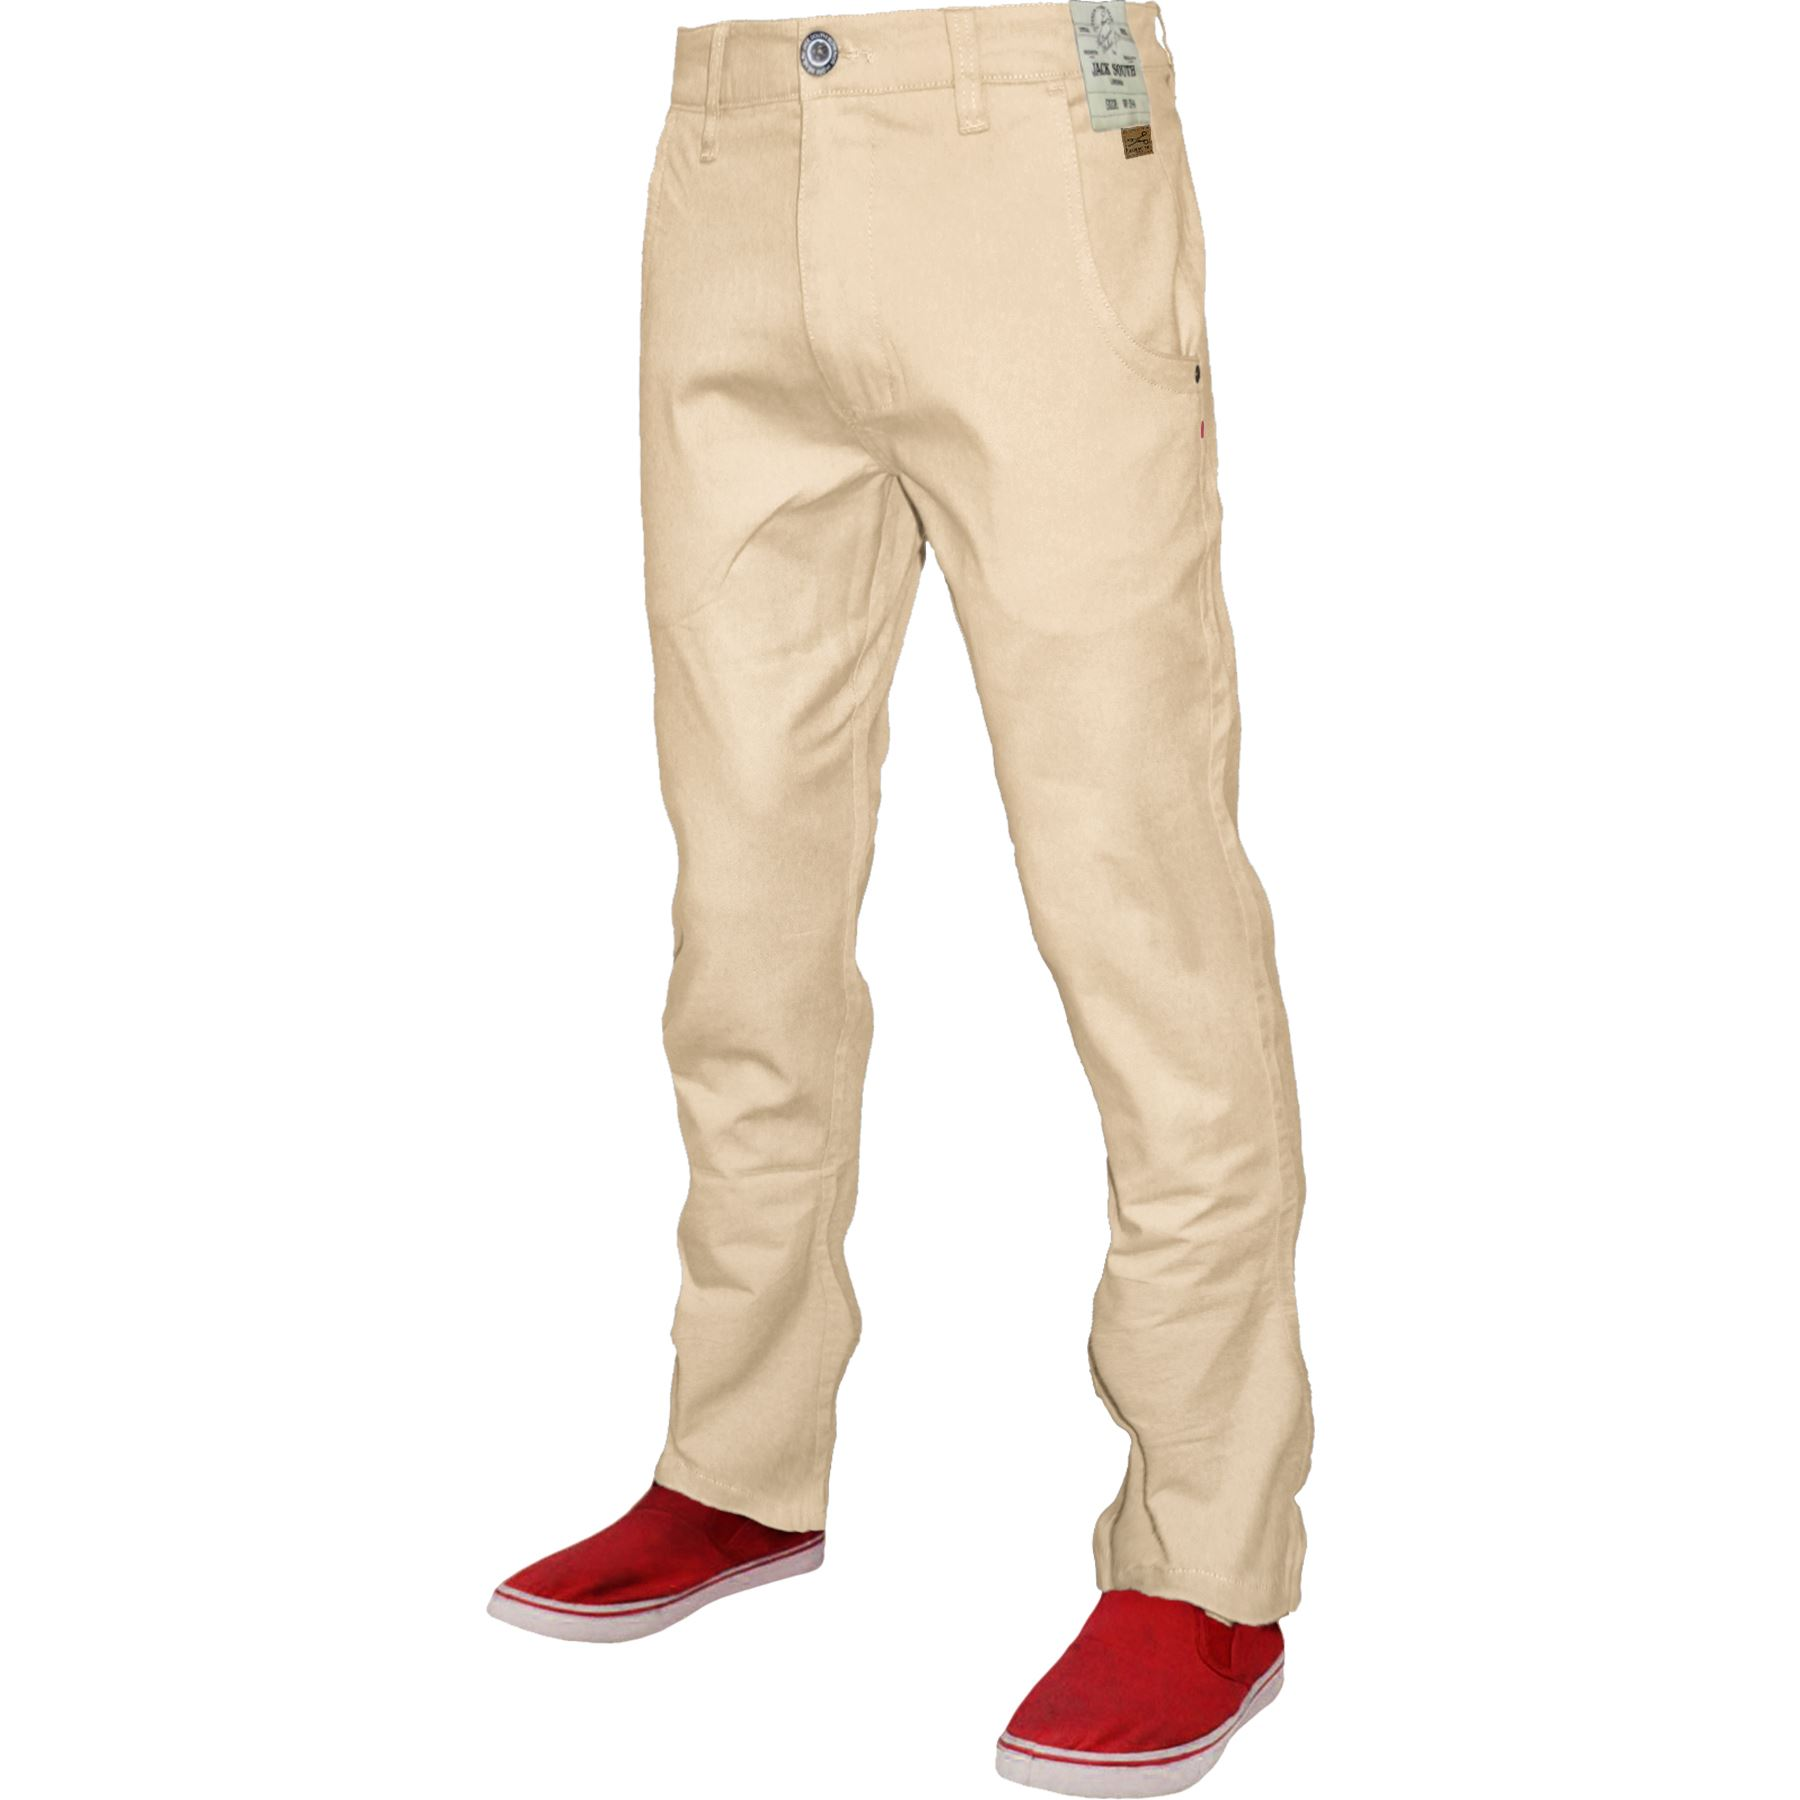 Mens-Chino-Classic-Regular-Fit-Trouser-Casual-Stretch-Spandex-Pants-Size-32-40 thumbnail 24